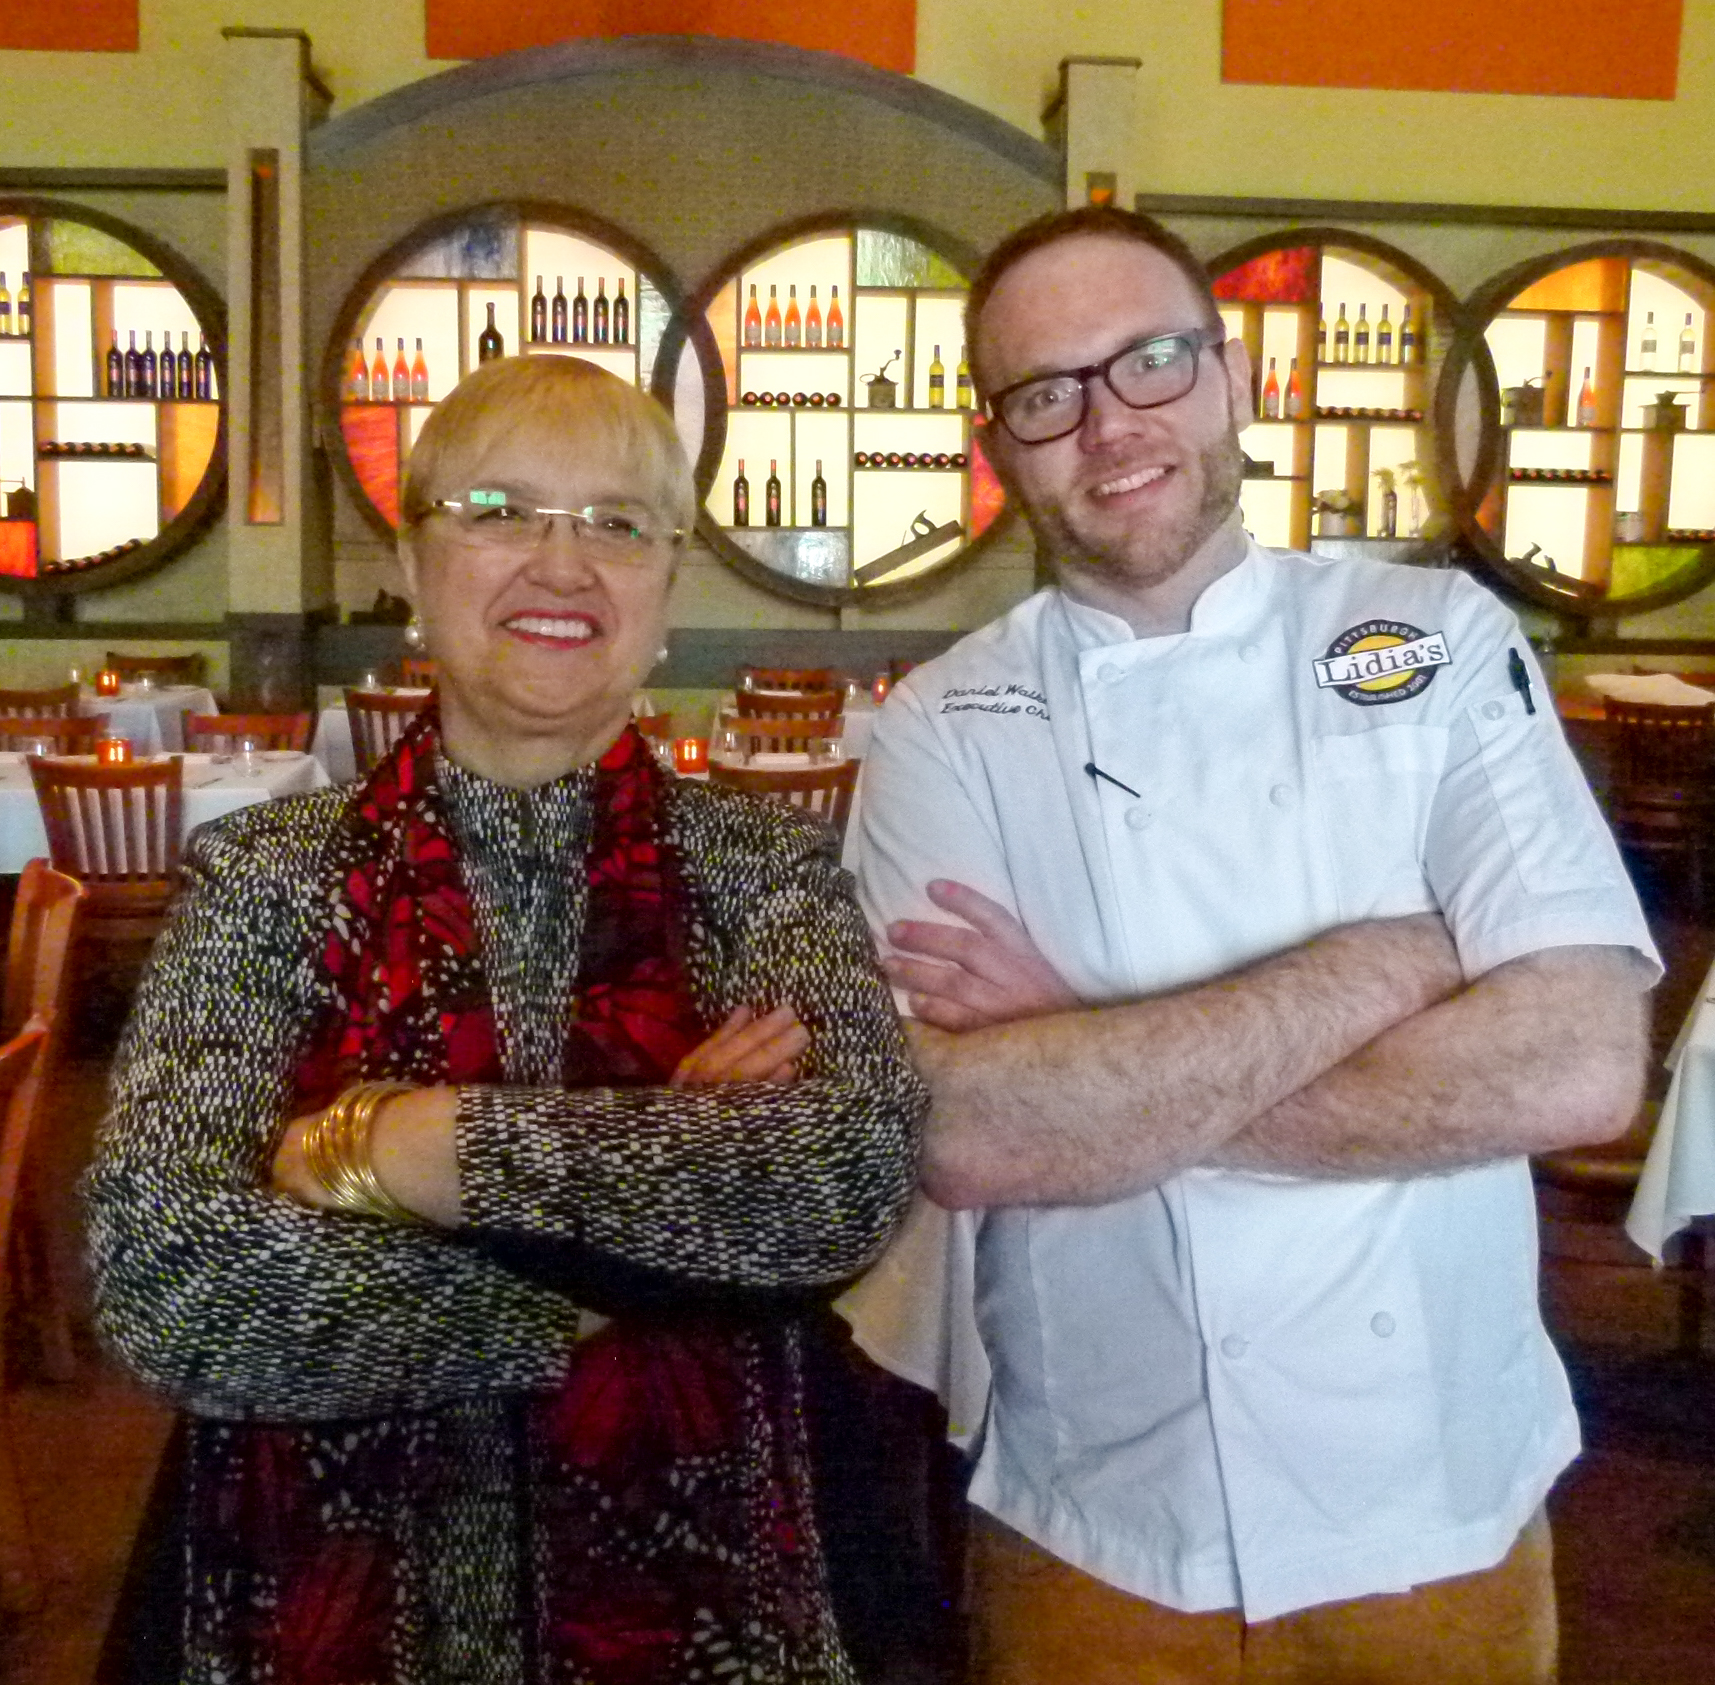 The namesake of Lidia's Pittsburgh, Lidia Bastianich, and new executive chef, Daniel Walker.